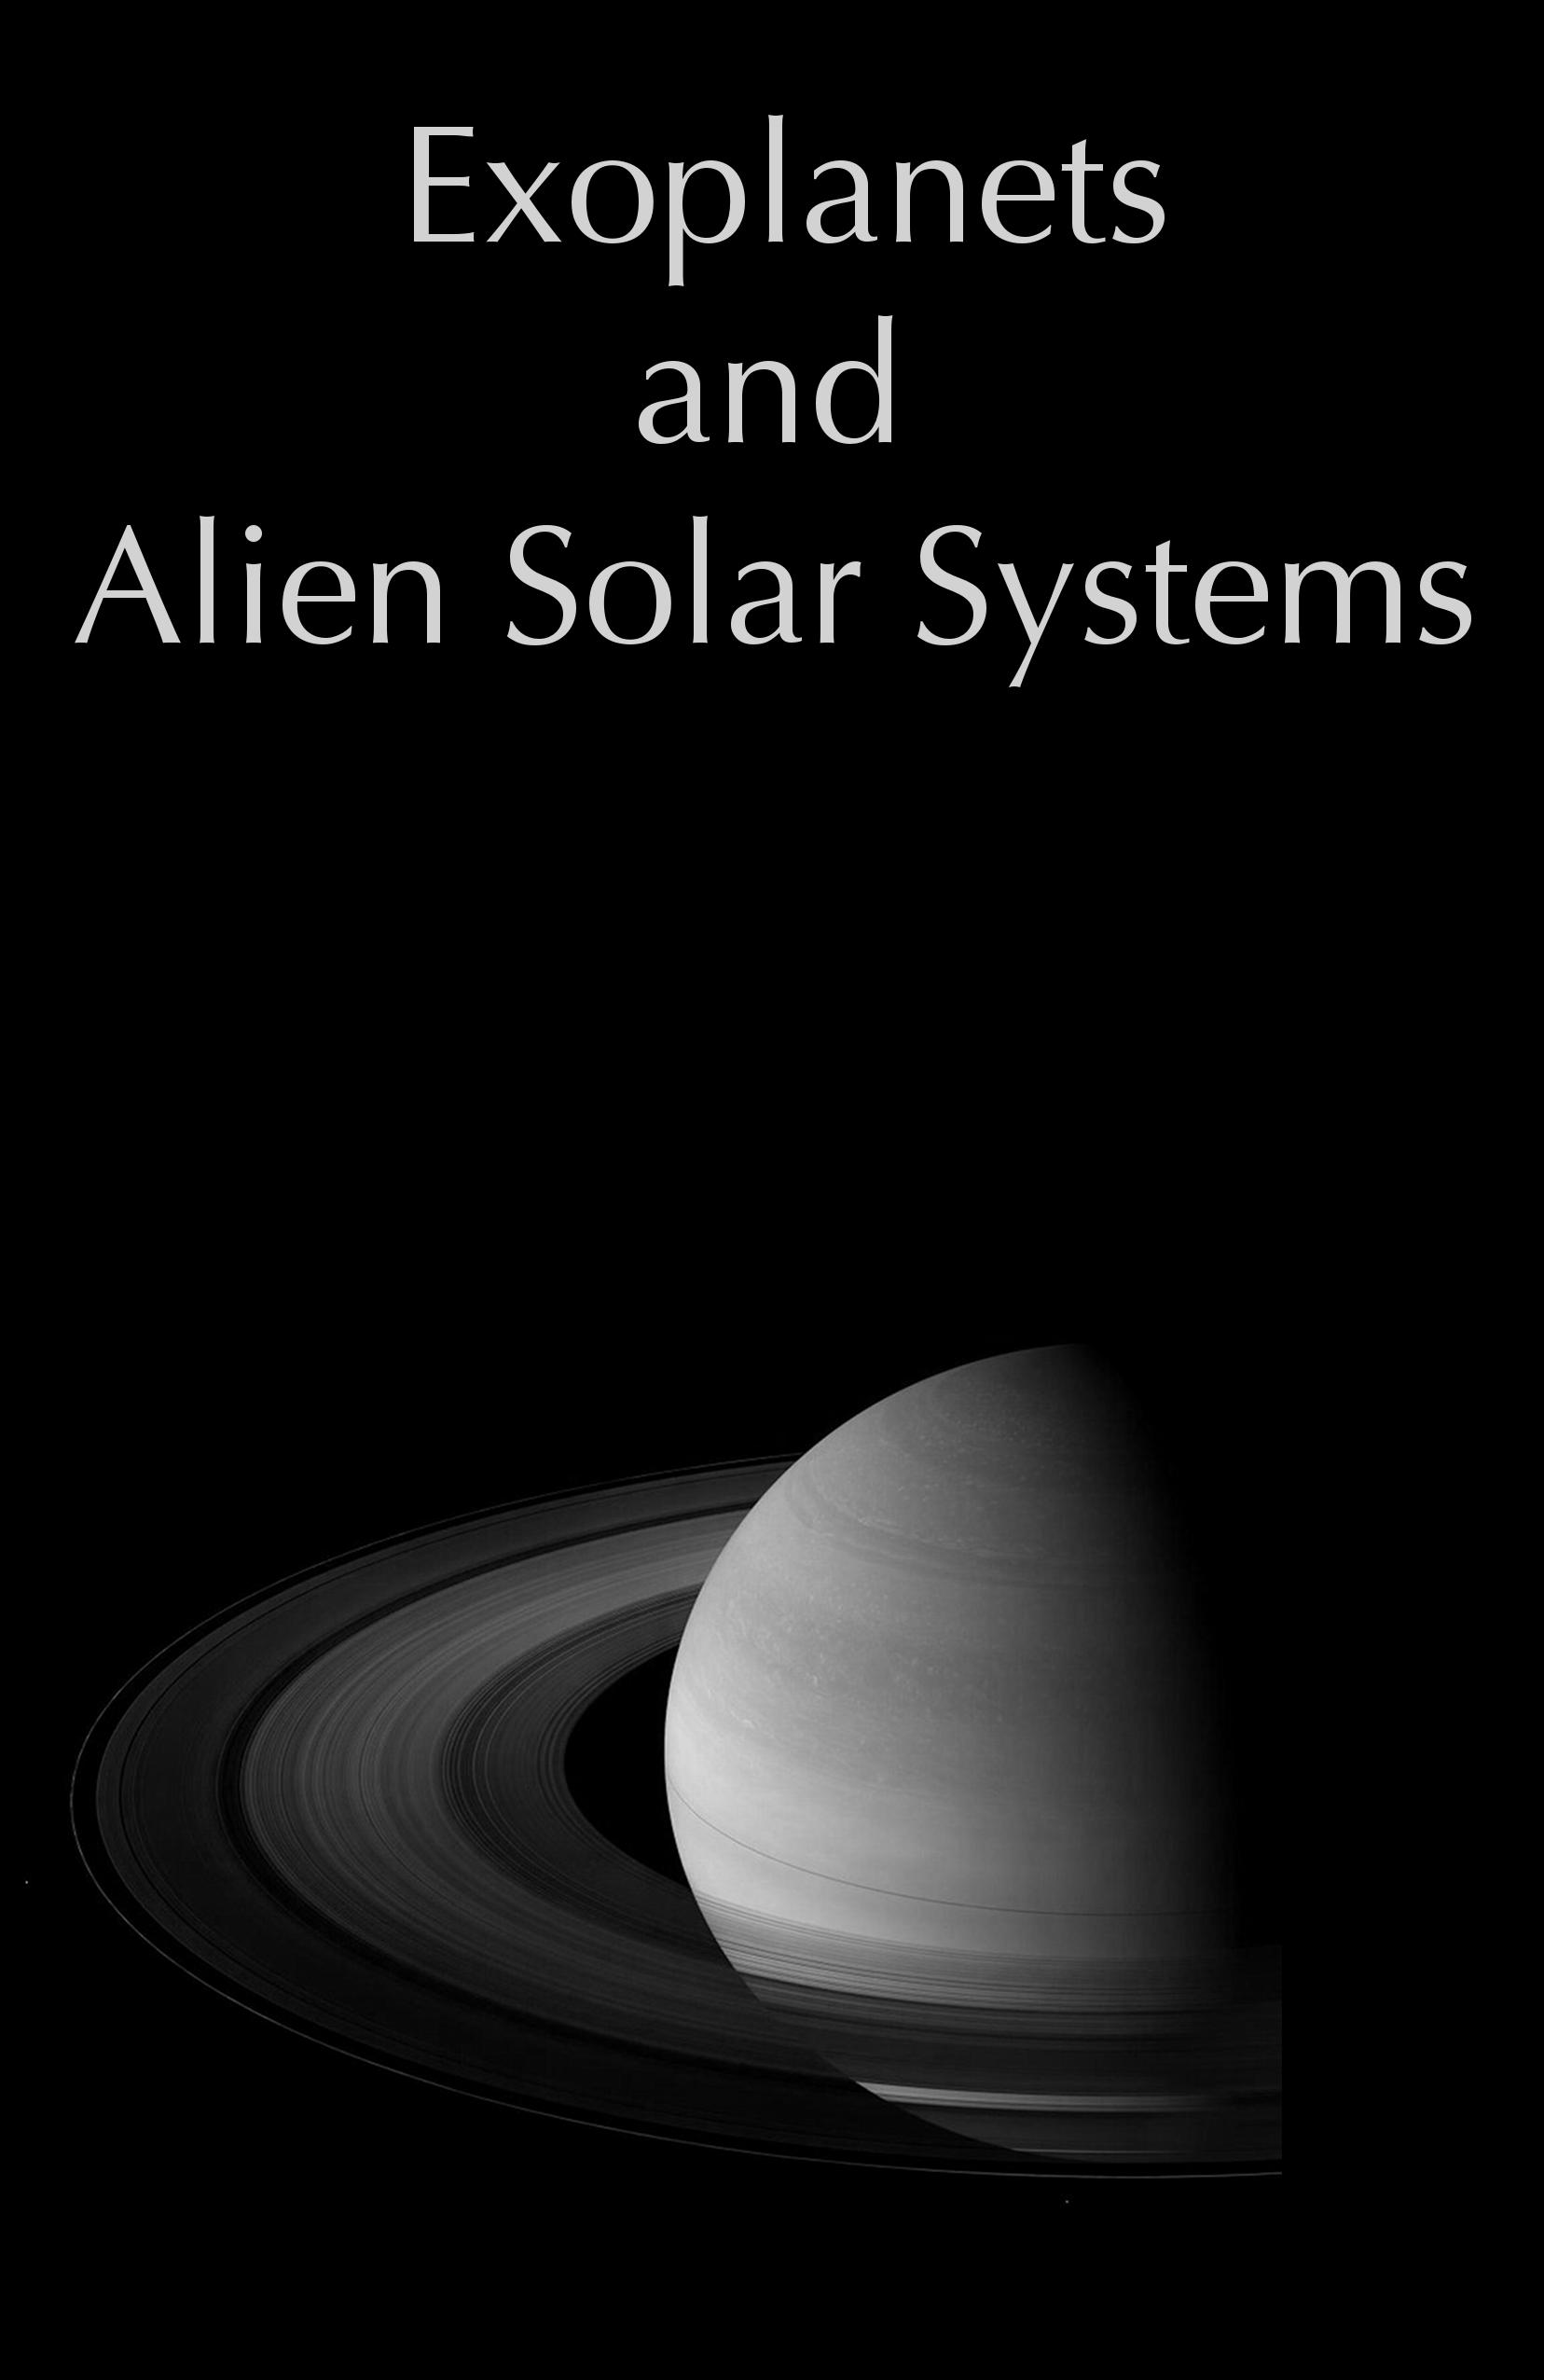 Exoplanets and Alien Solar Systems